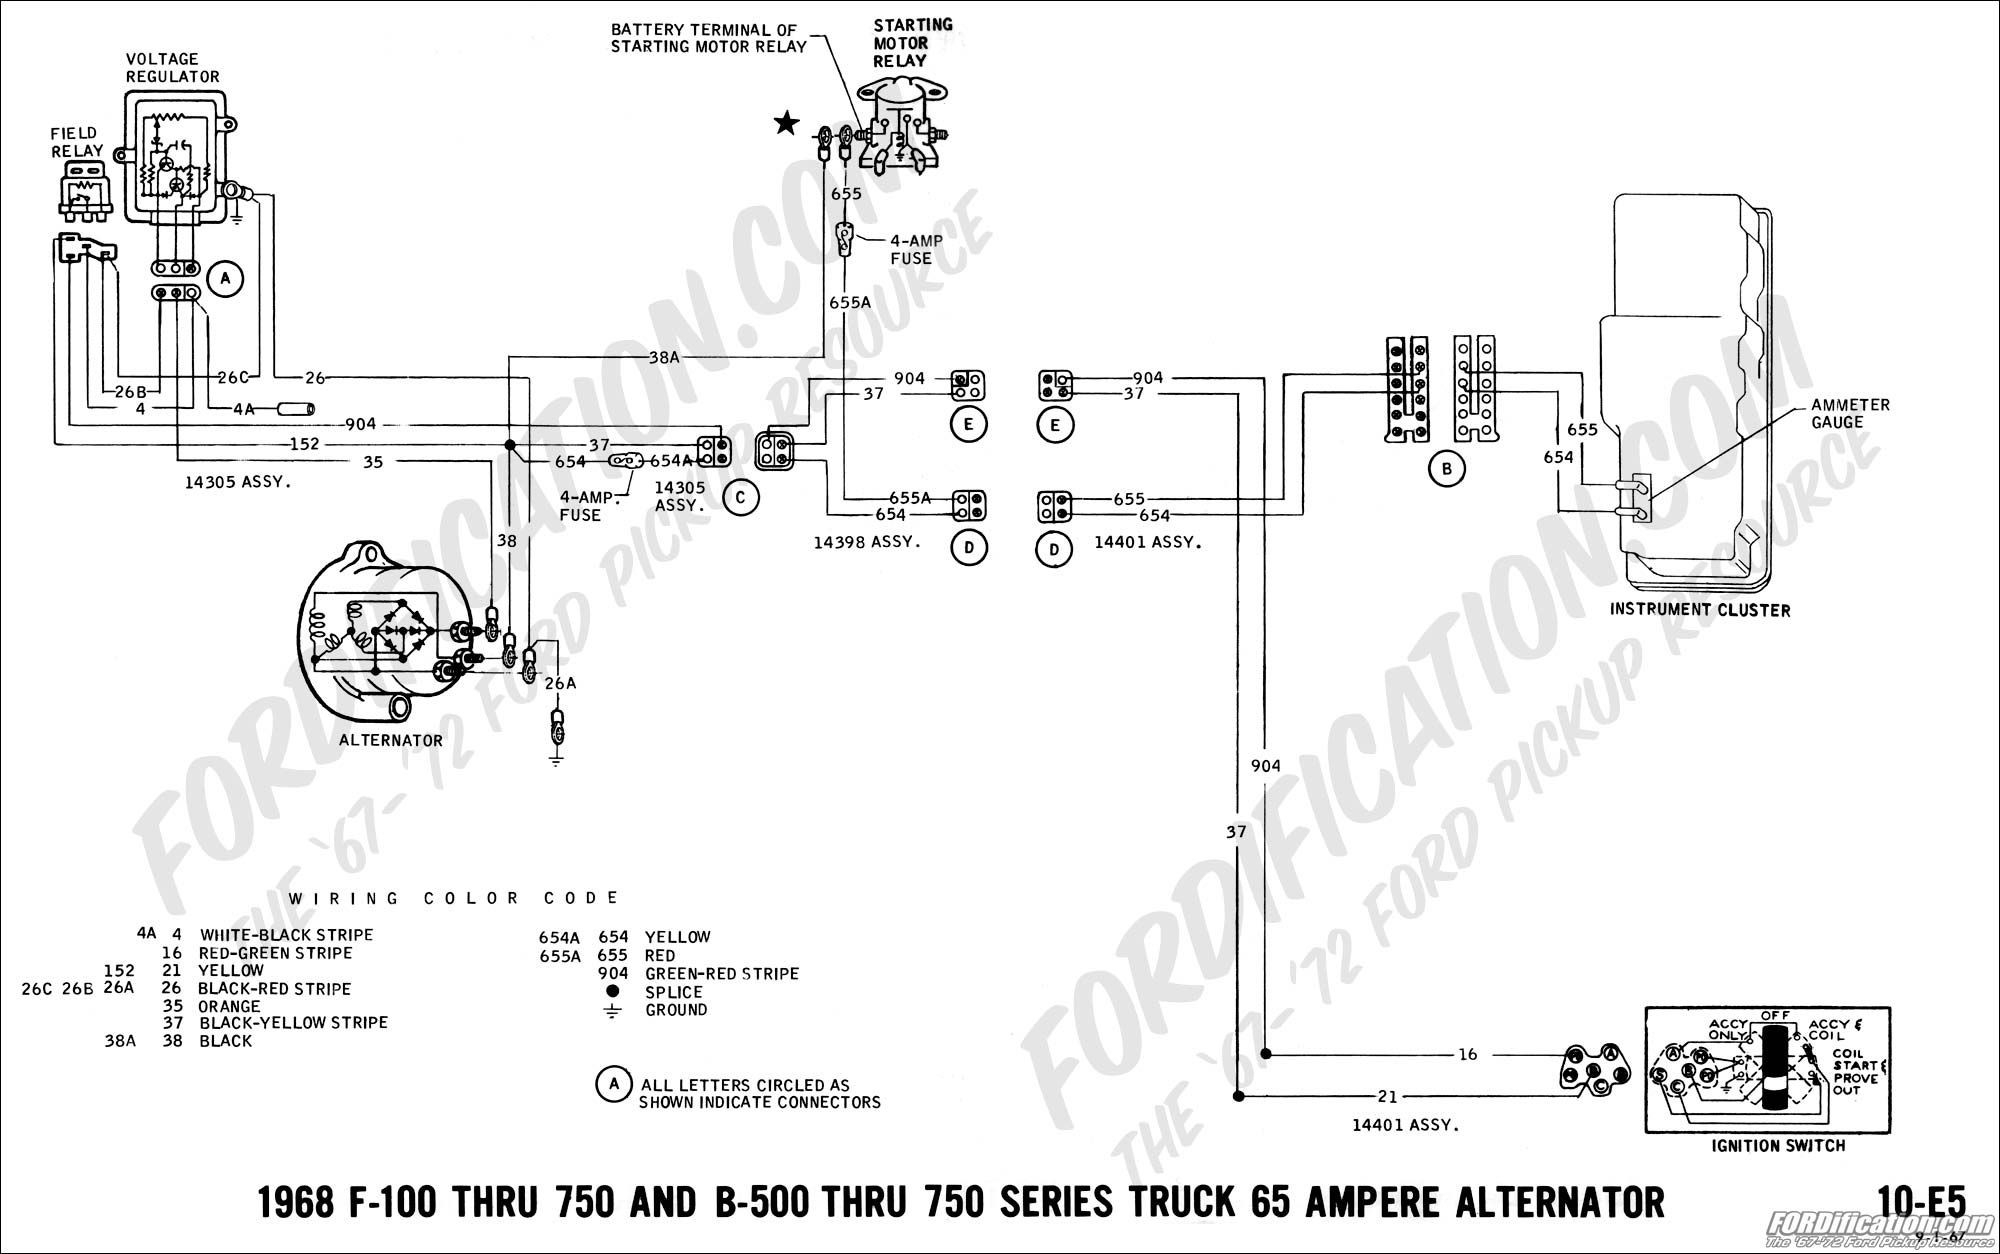 85 Toyota Alternator Wiring Diagram | New Wiring Resources 2019 on